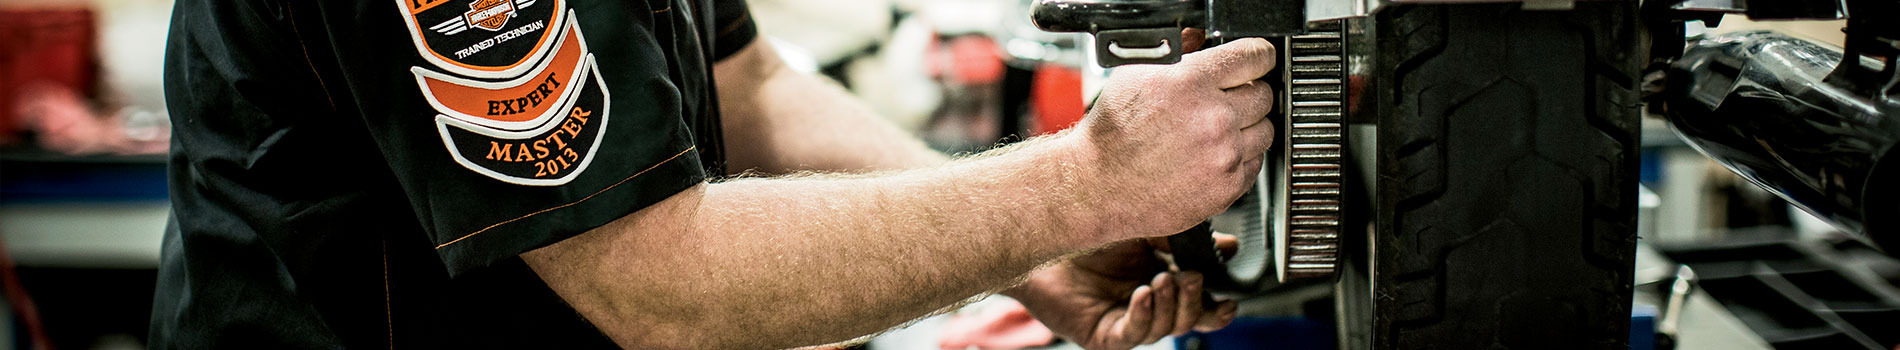 Get your service and repairs done at Big Sky Harley-Davidson